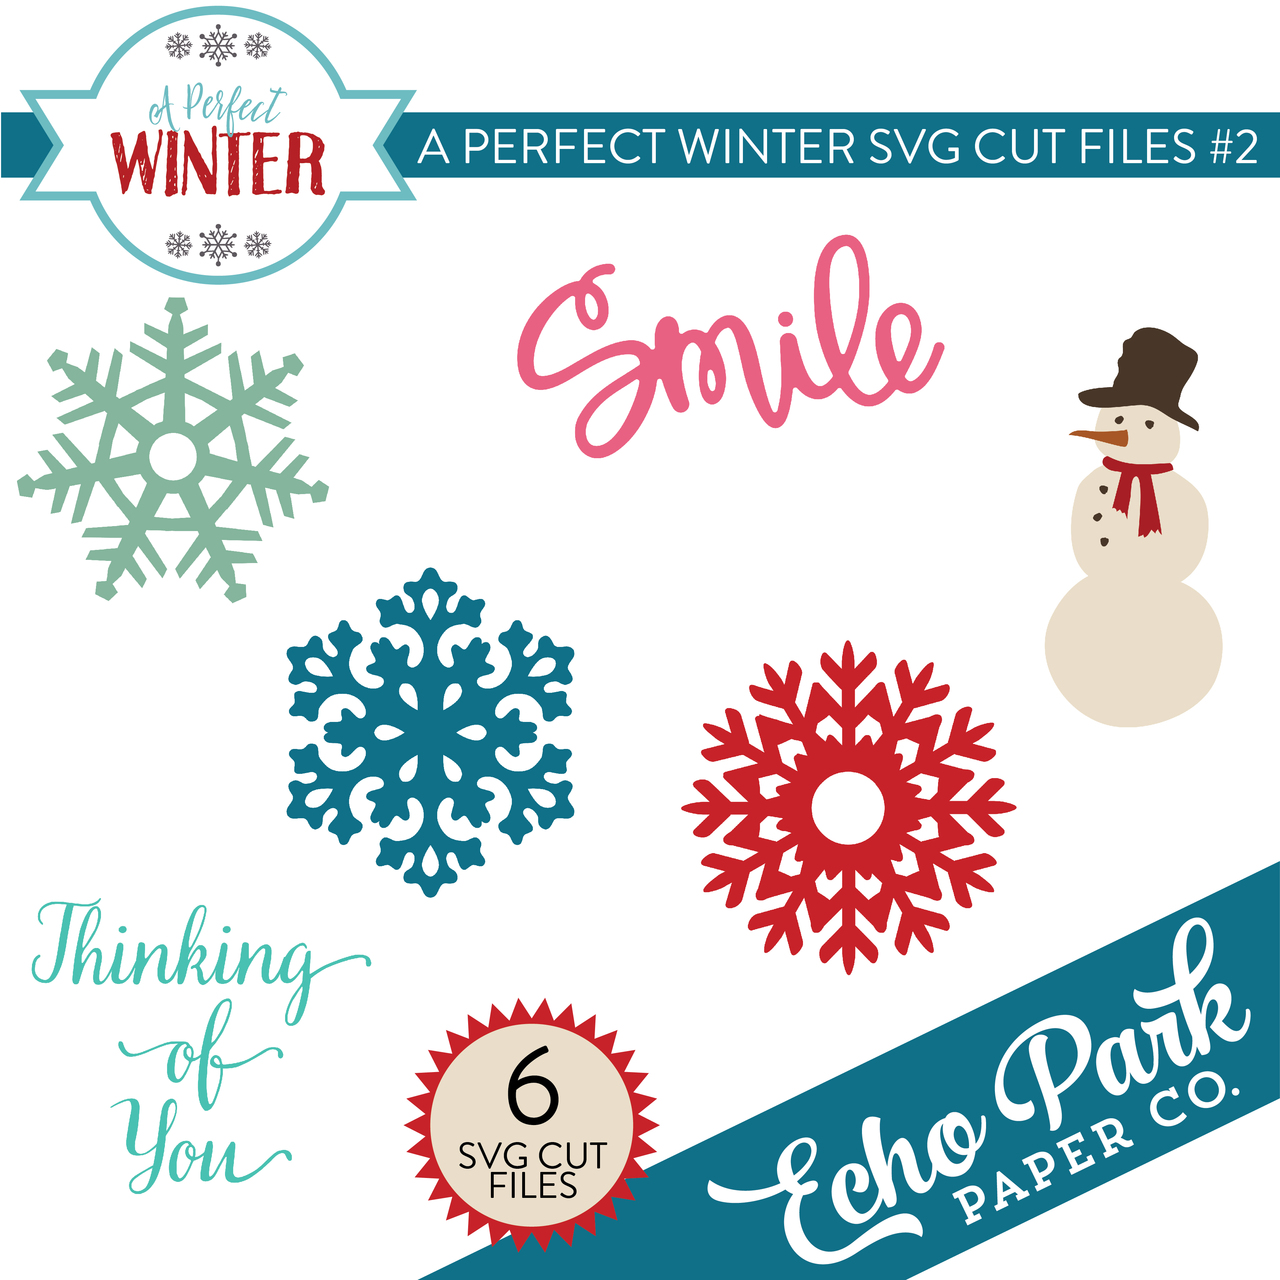 A Perfect Winter Svg Cut Files 2 Snap Click Supply Co